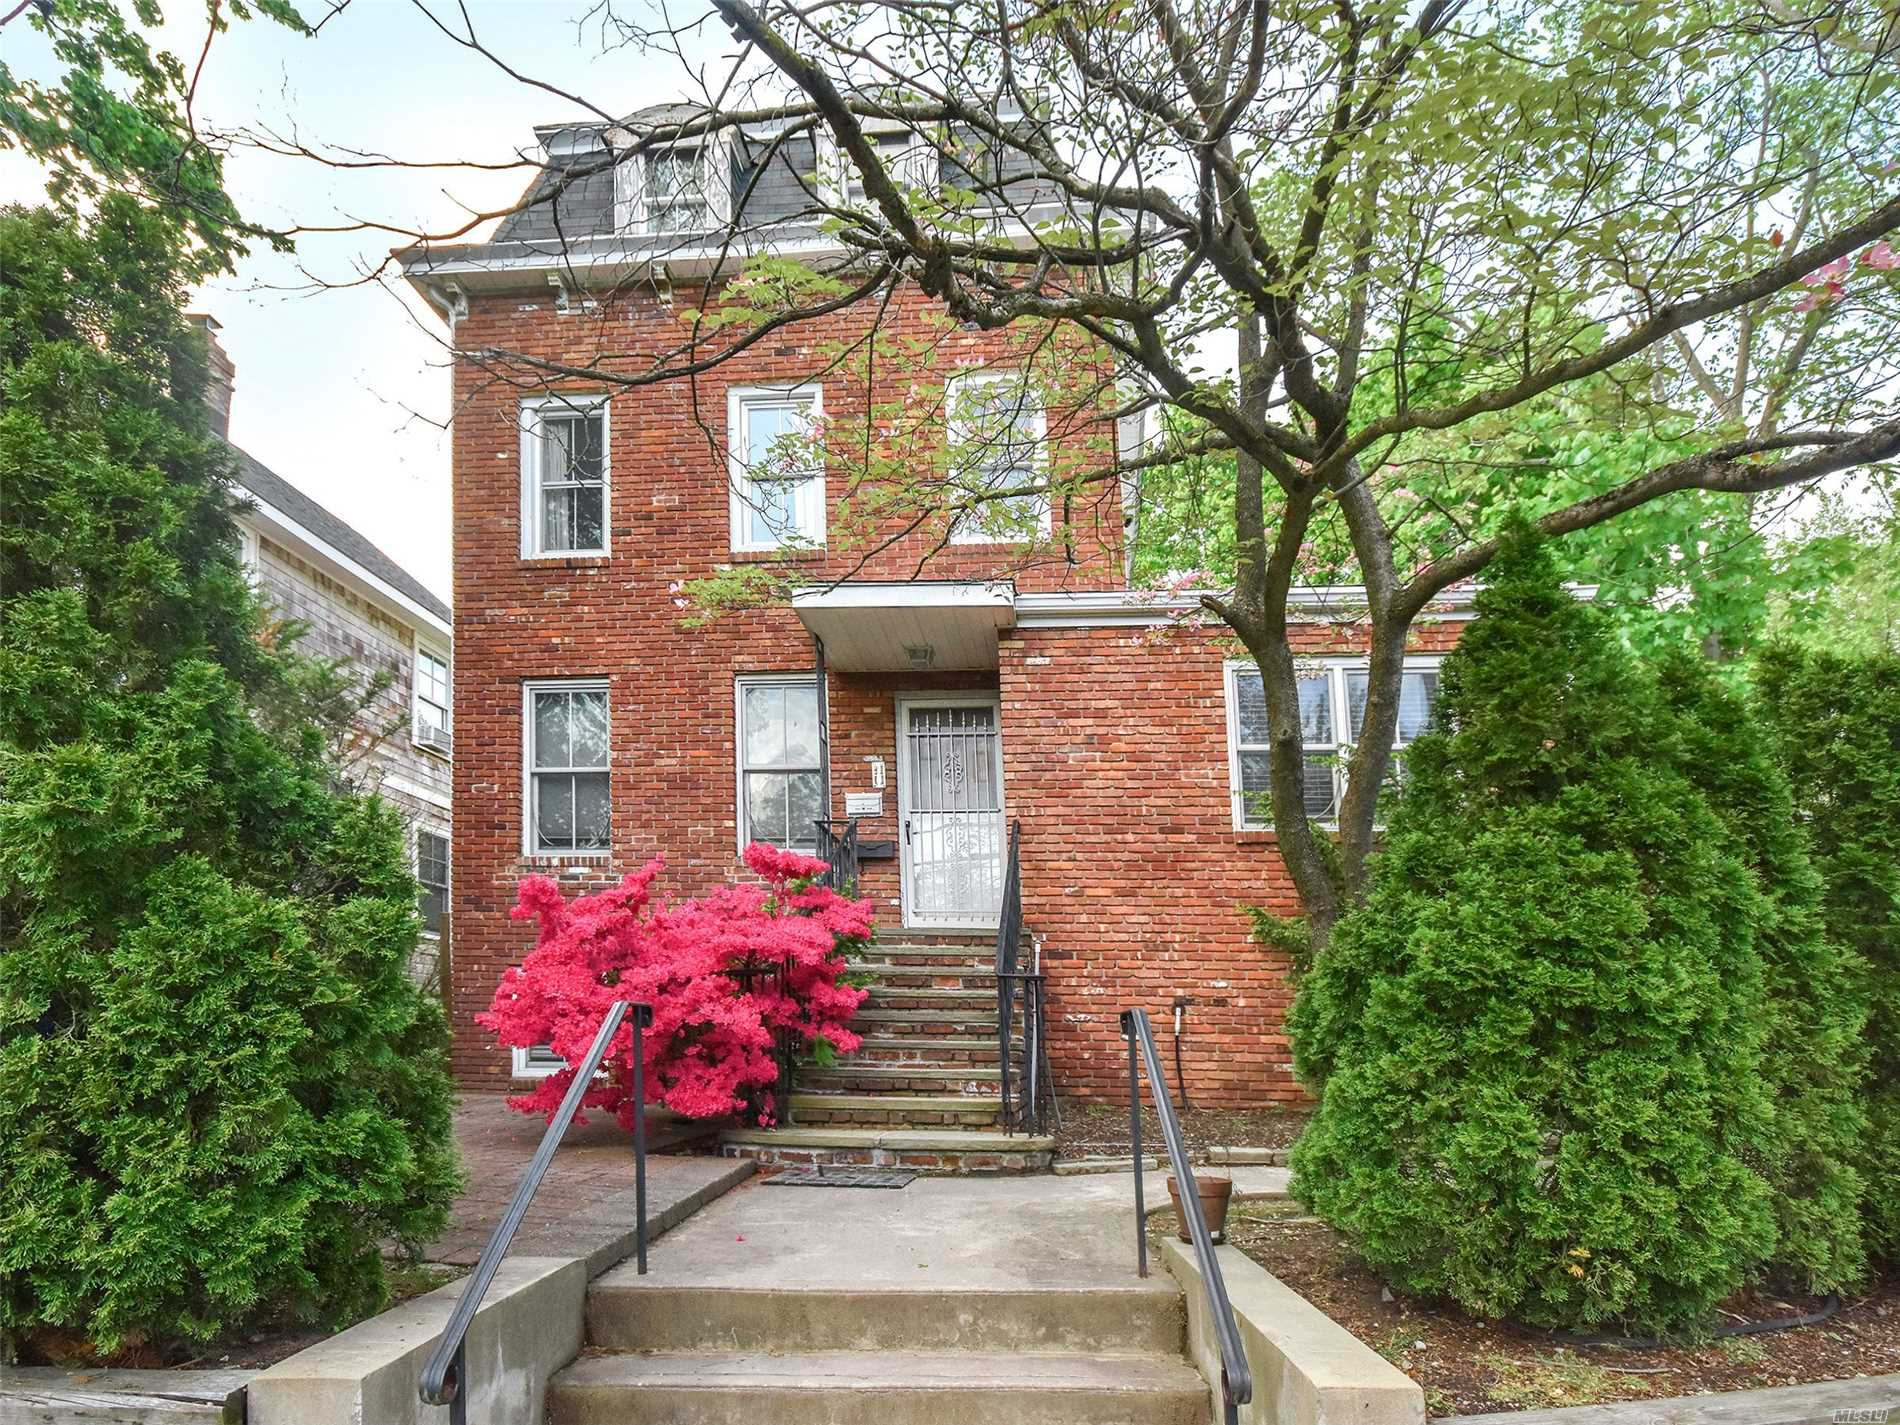 Beautifully Updated Sunny Second Floor Apartment with New Kitchen Including Granite Countertops and Stainless Steel Appliances. Your Own Private Washer/Dryer Is In The Apartment. Gleaming New Hardwood Floors Throughout. Large Bedroom and Full Bath With Tub Complete This Welcoming Abode. Use Of Brick Patio, Private Parking For One Car. One Cat Considered.